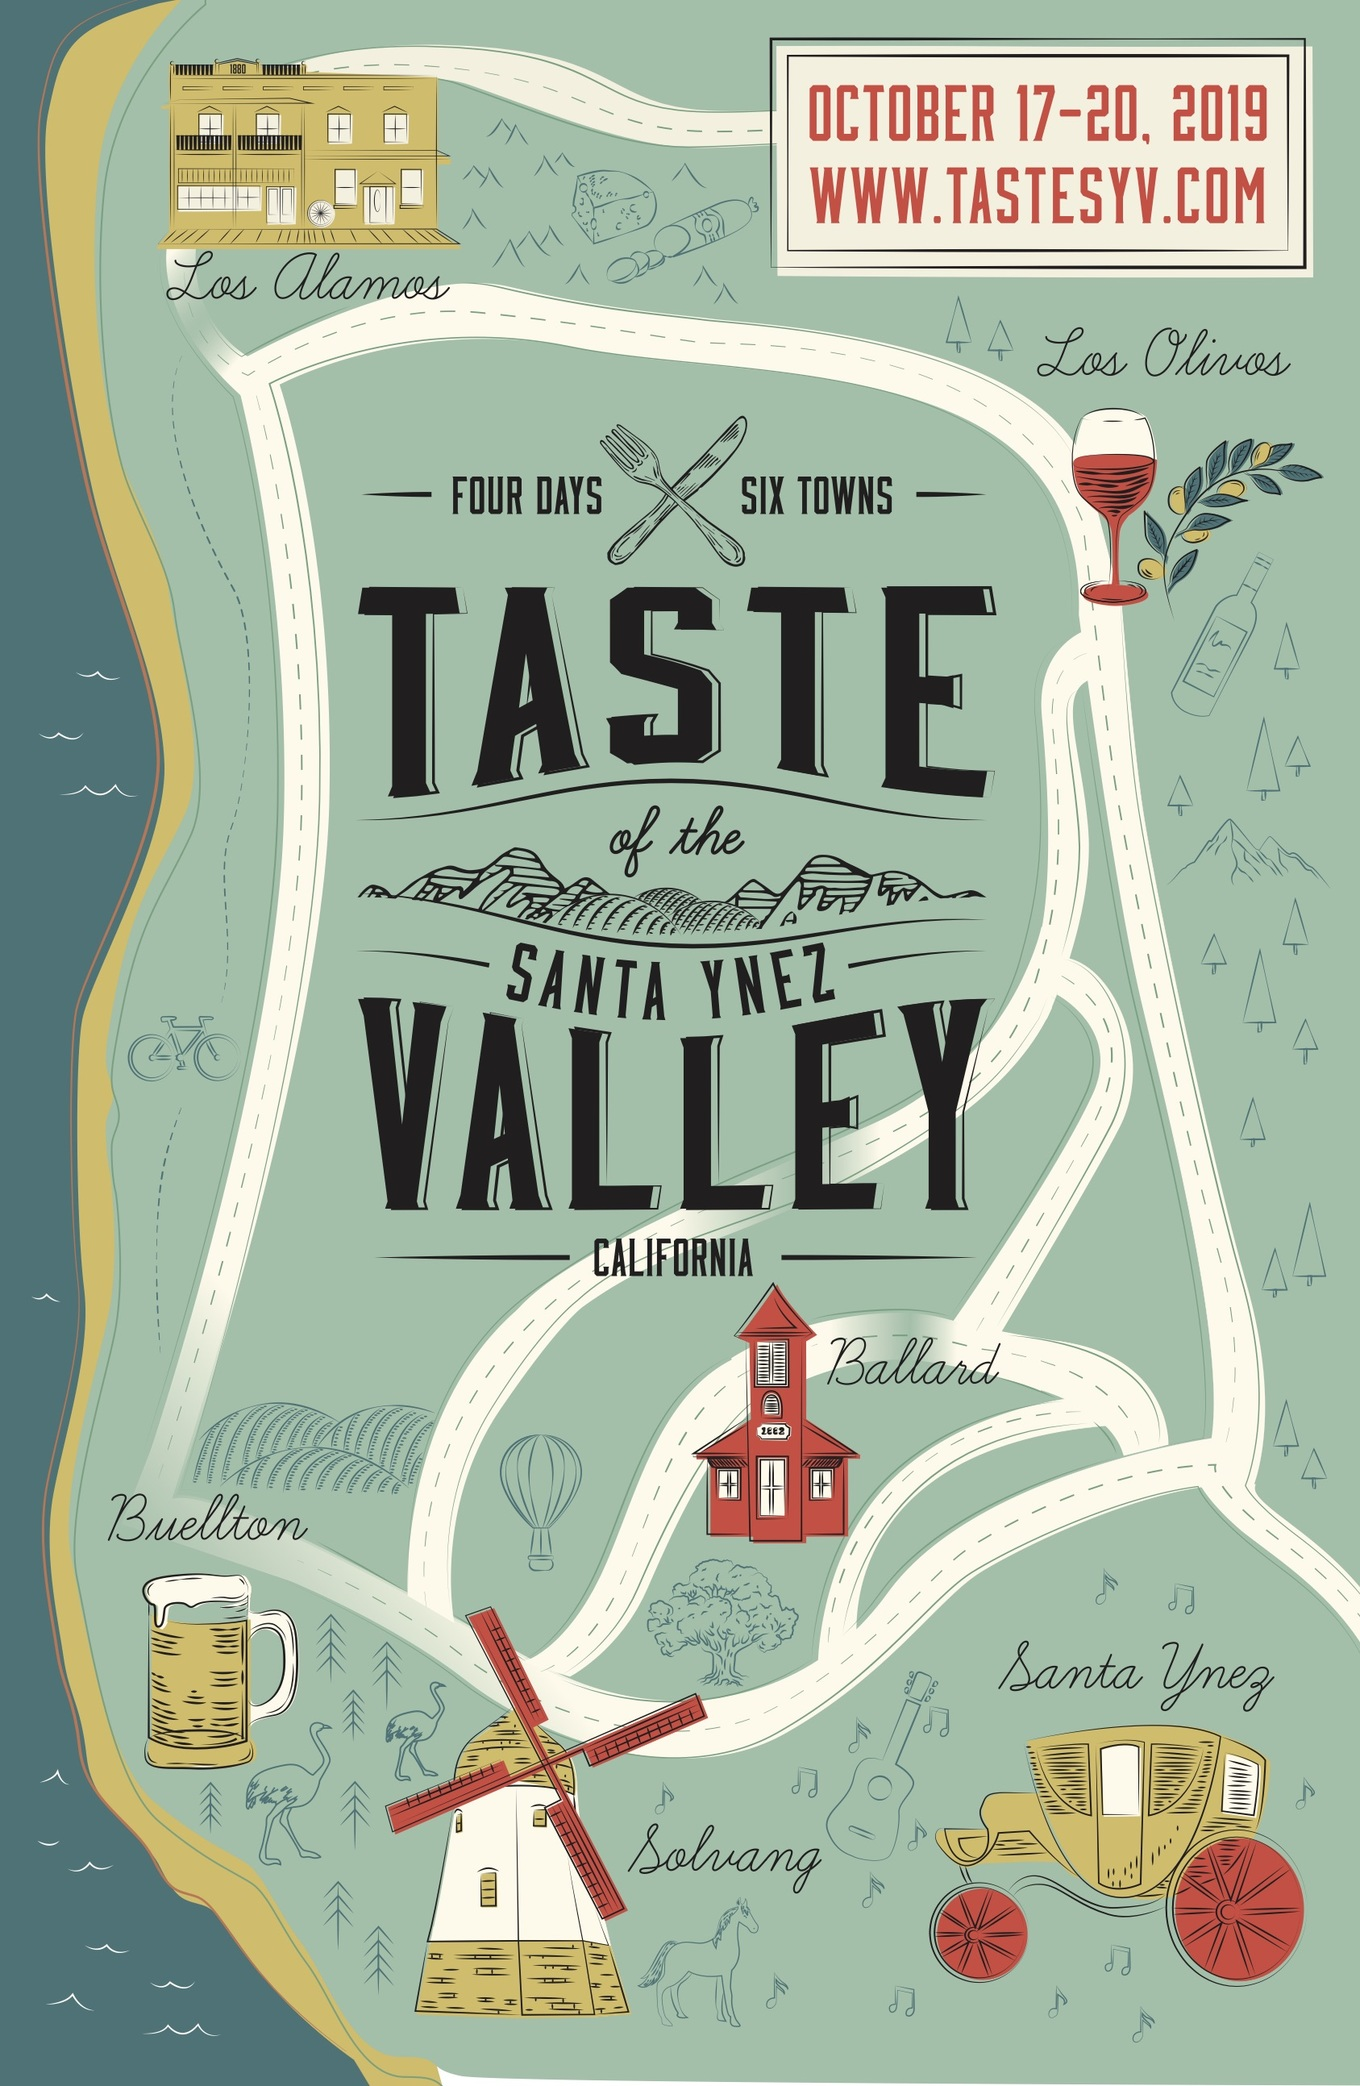 Taste of the Santa Ynez Valley - Tickets - Santa Ynez Valley ... on lompoc wine trail map, amador wineries map, san ynez map, el dorado county wineries map, california ava map, sta rita hills appellation map, sonoma winery map, sonoma valley map, buellton wineries map, solvang map, augusta mo wineries map, best santa barbara wineries map, fair play wineries map, lompoc wineries map, monterey wineries map, los olivos map, napa valley wineries map, morro bay wineries map, santa rita hills map, montana state parks map,